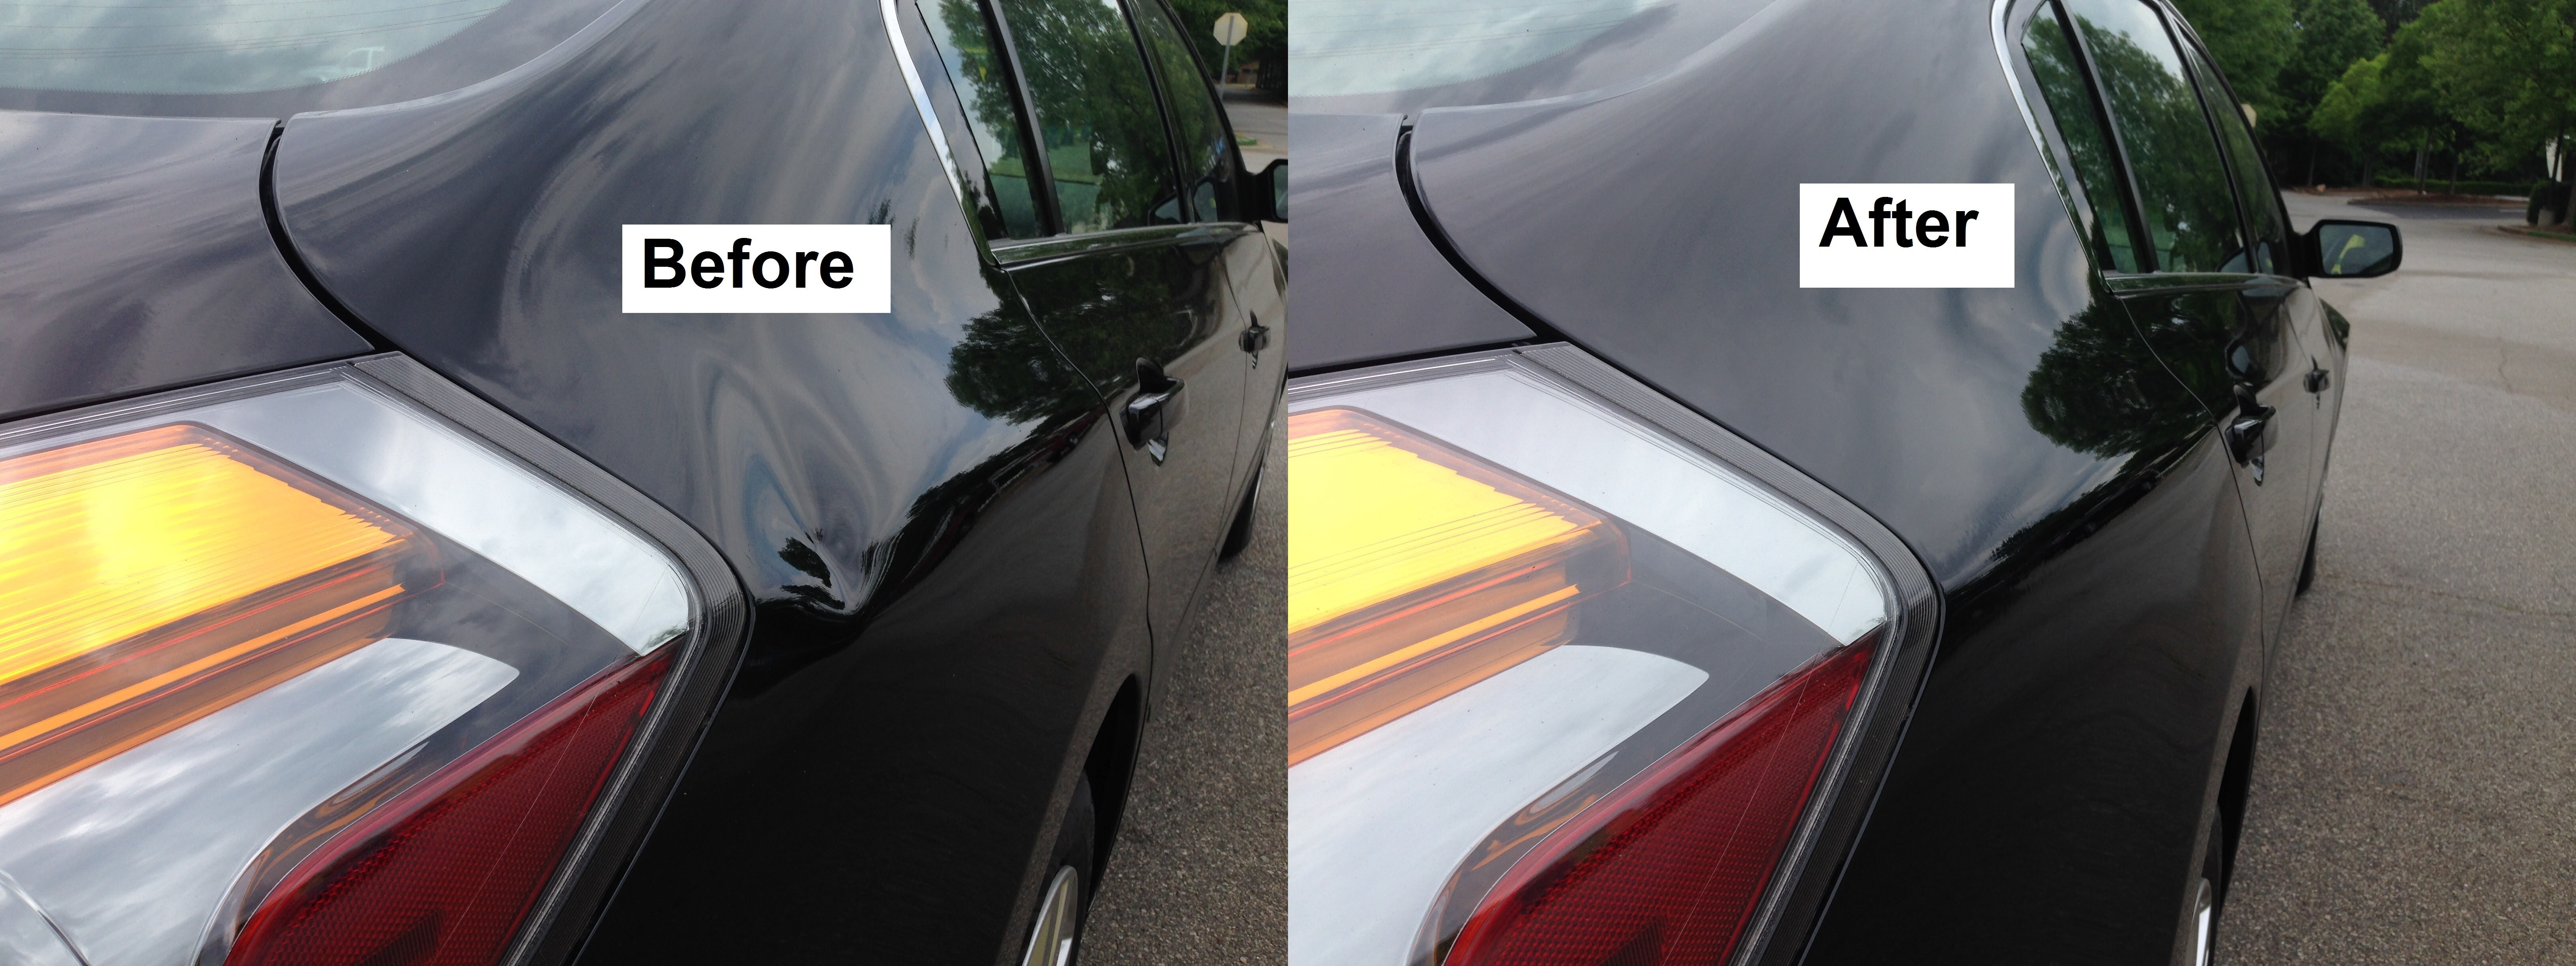 car dent repair estimate